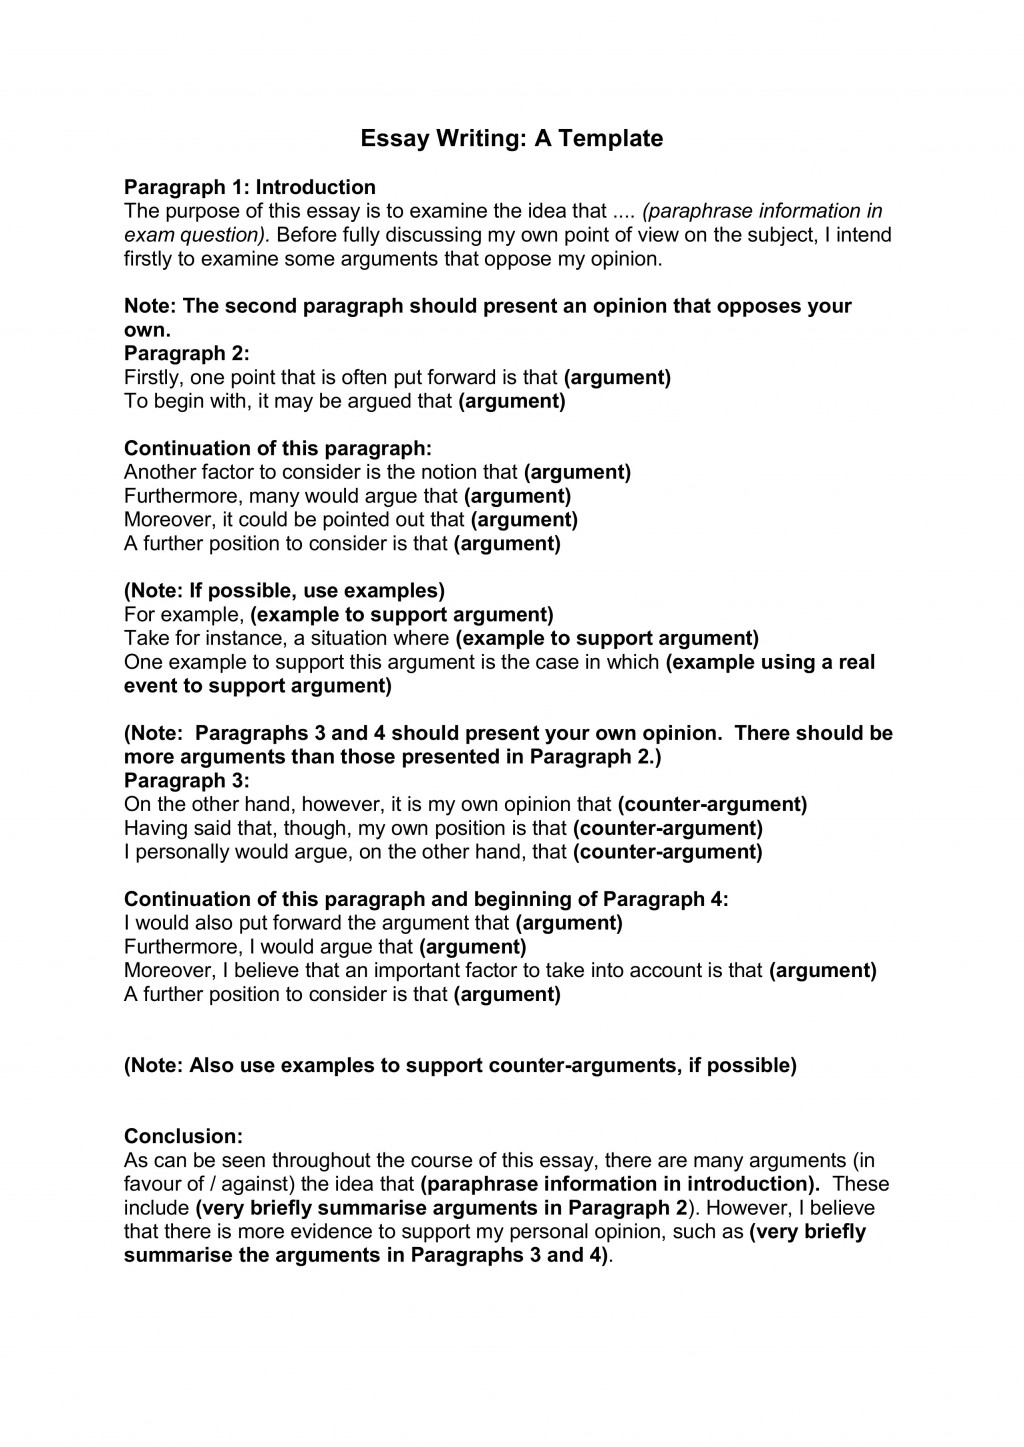 007 Essay Example Writing Template For Part Write An Stating Your Astounding Position On Whether A Person Can Choose To Be Happy Which Is More Important What Thinks Large